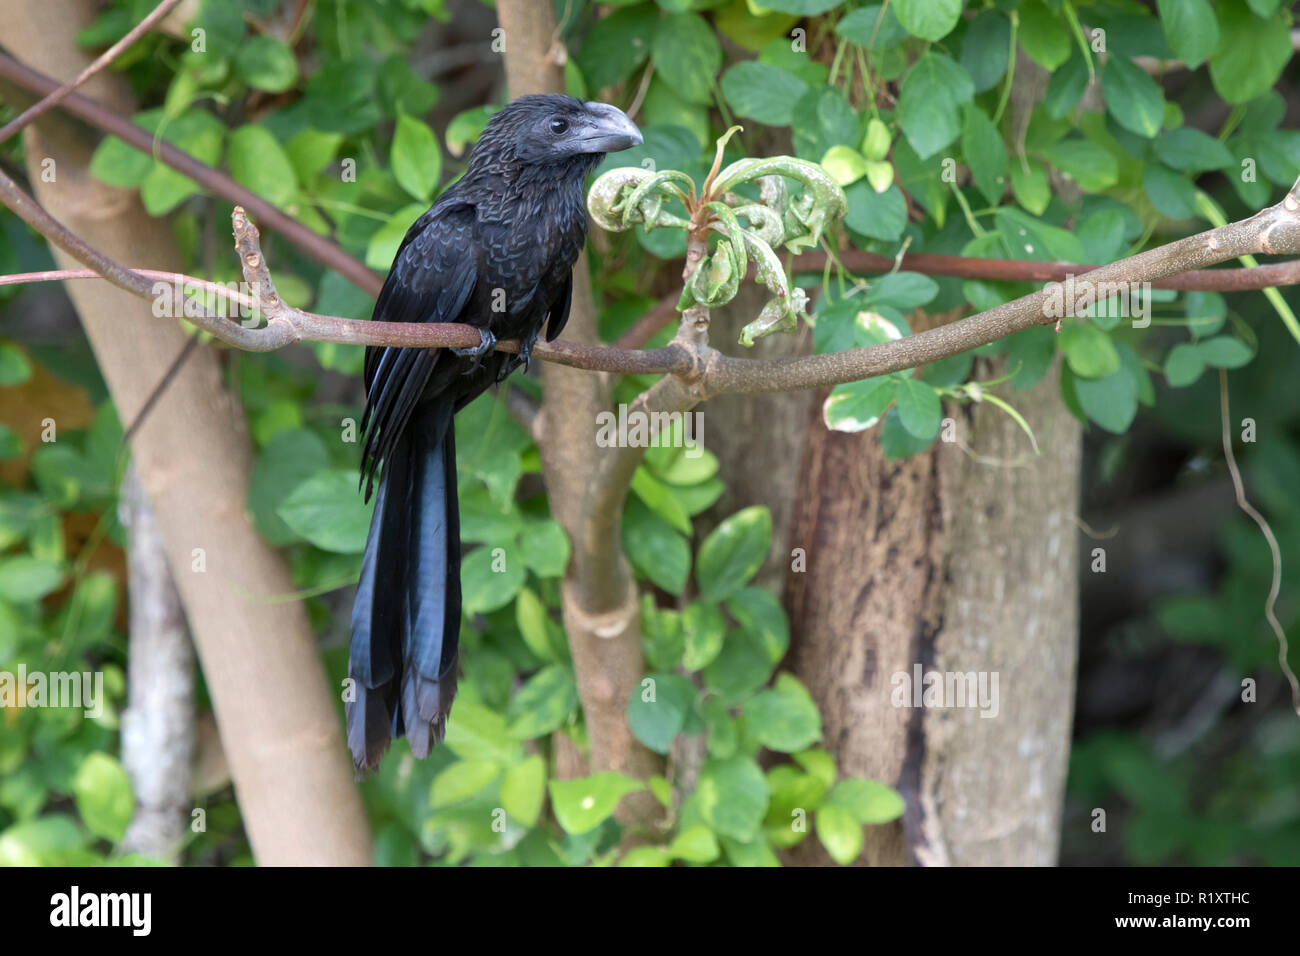 smooth-billed ani tree that sits on a tree branch at the edge of the forest - Stock Image